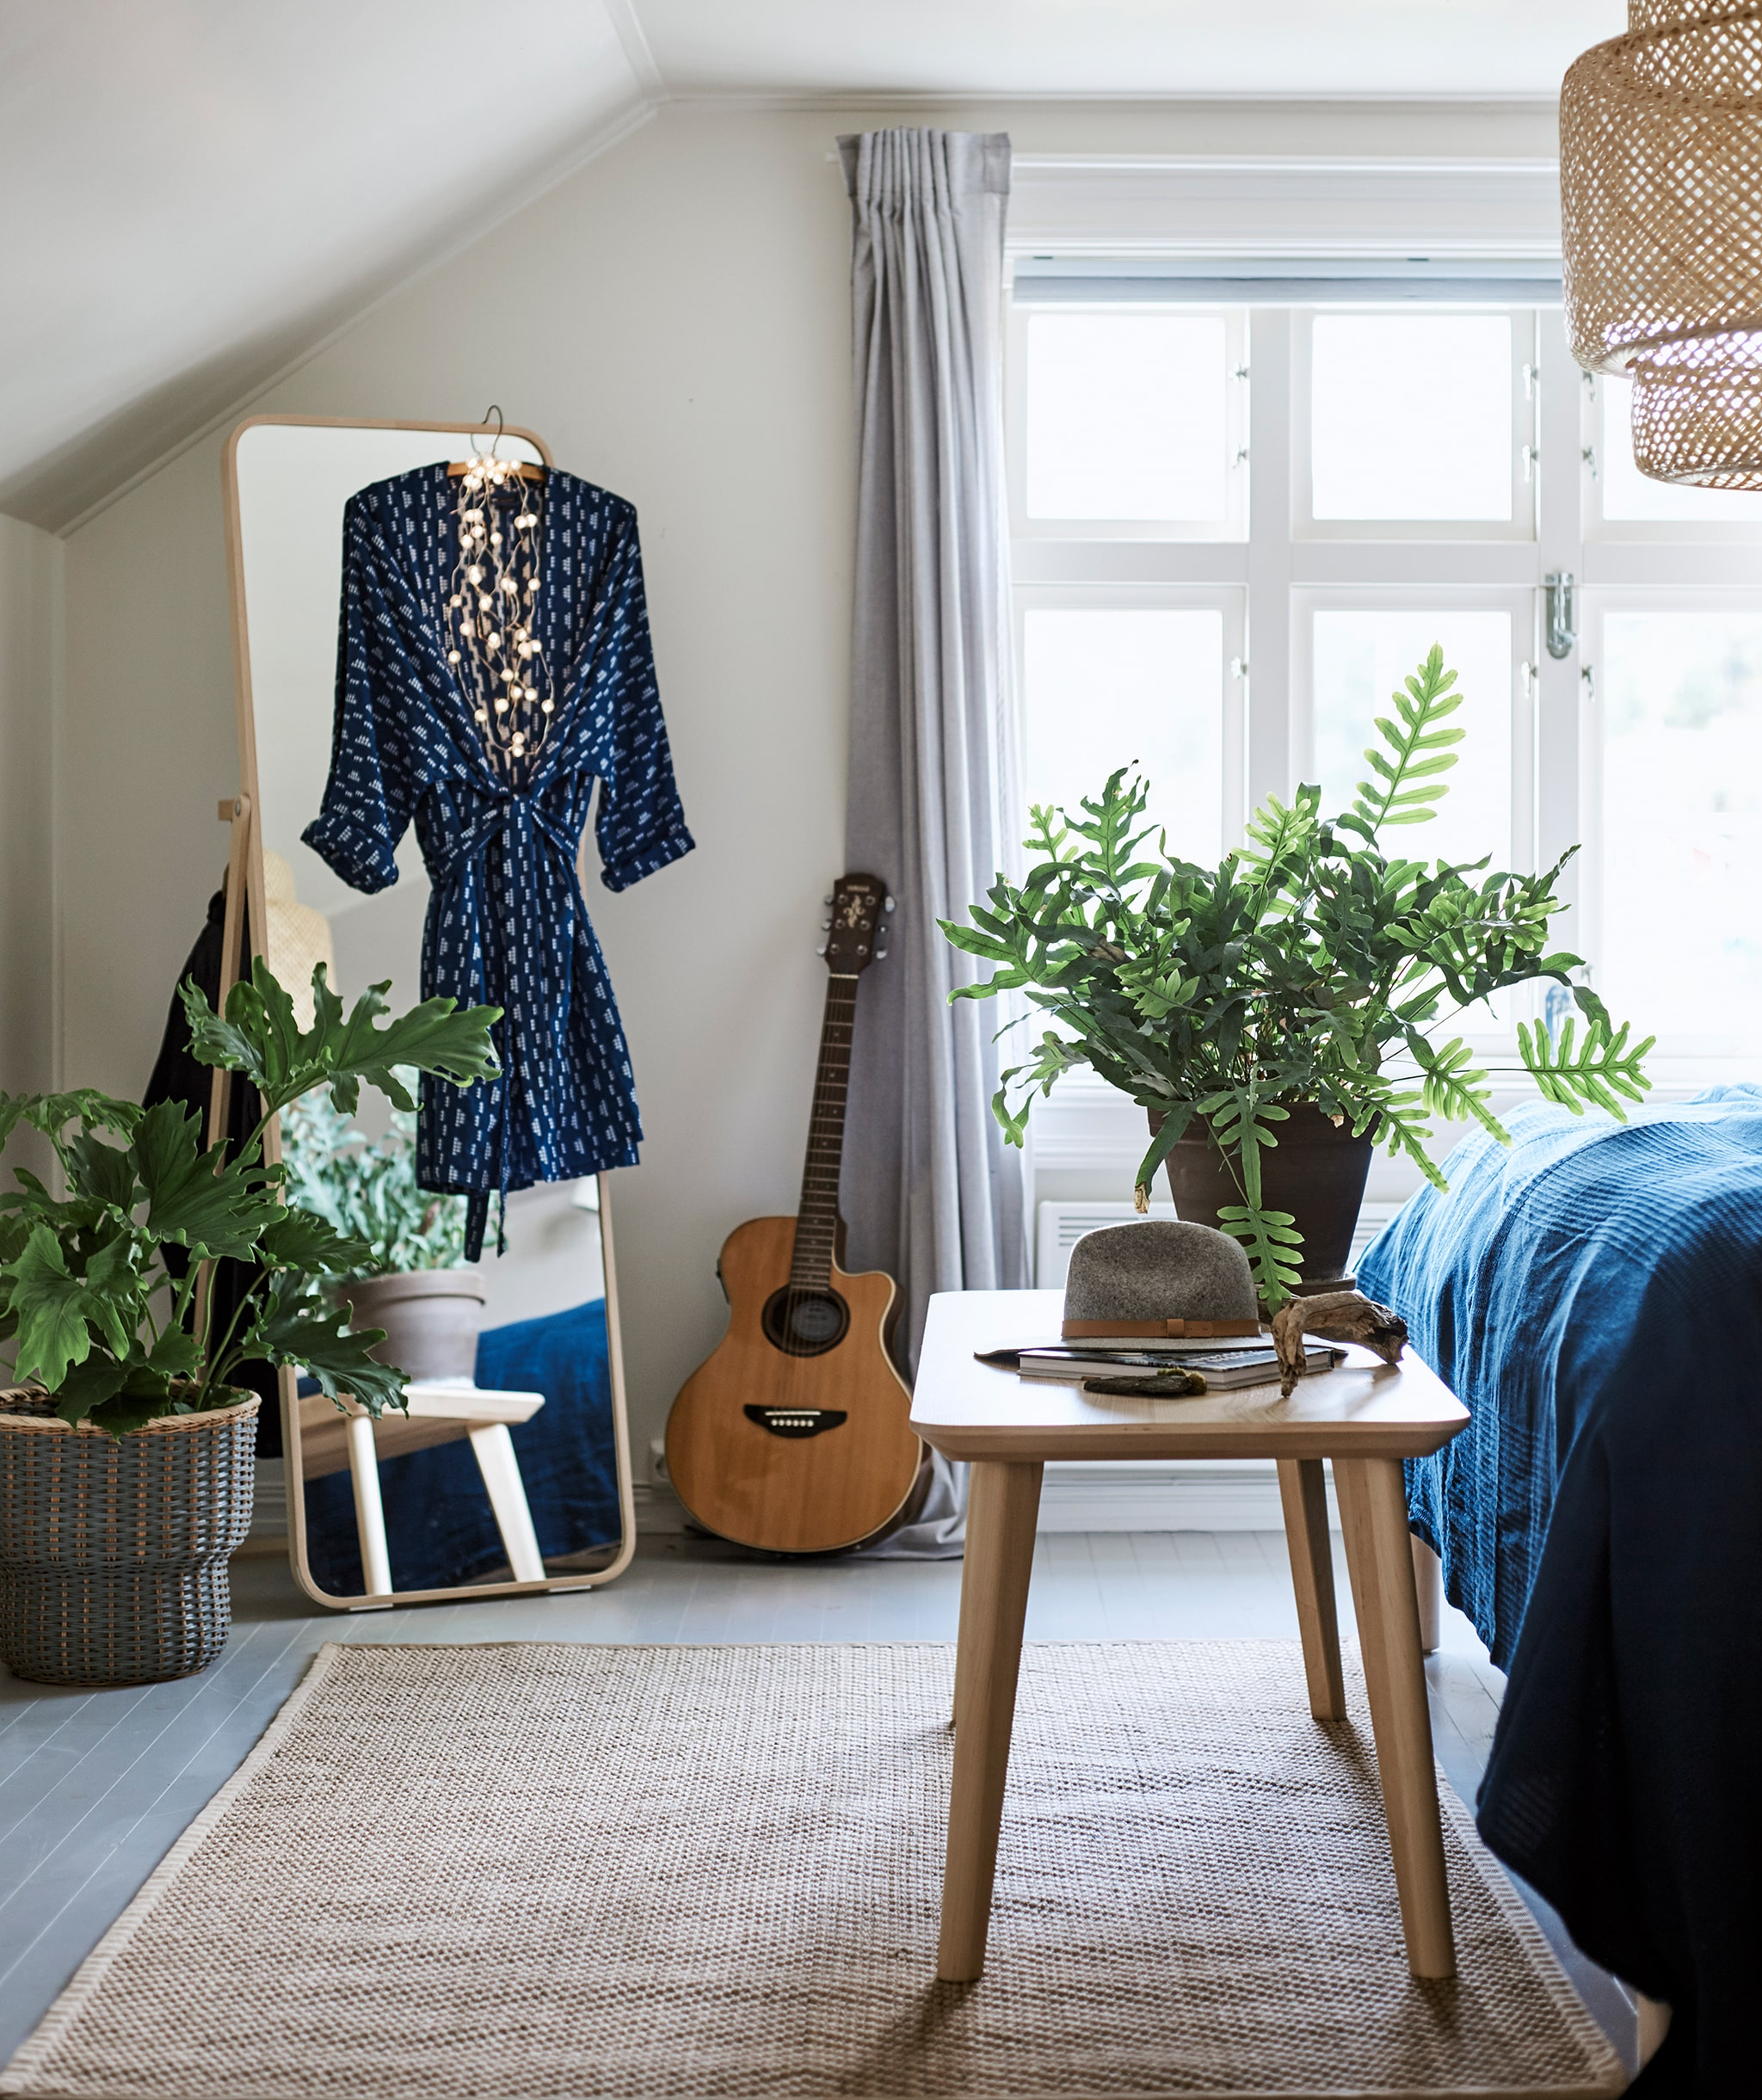 A bedroom with a woven ceiling lamp and rug, freestanding mirror with dress hanging on it and a bench at the end of the bed.